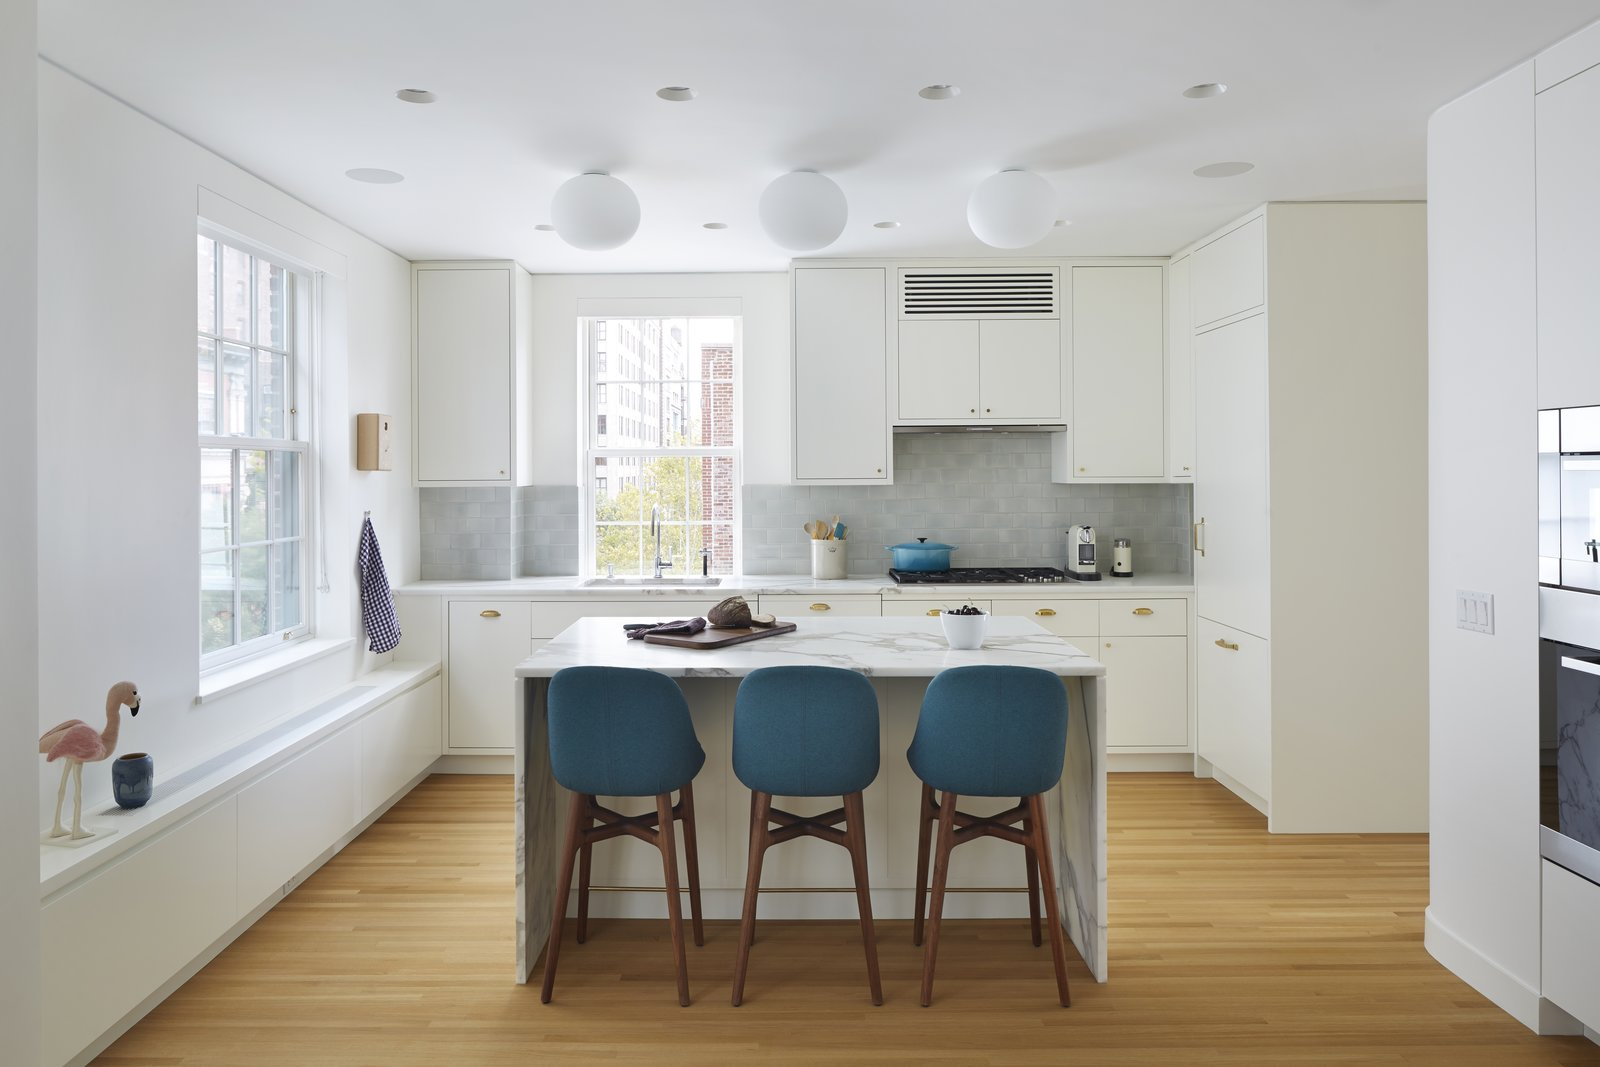 View from the dining area towards the kitchen.  5th Avenue Residence by pulltab